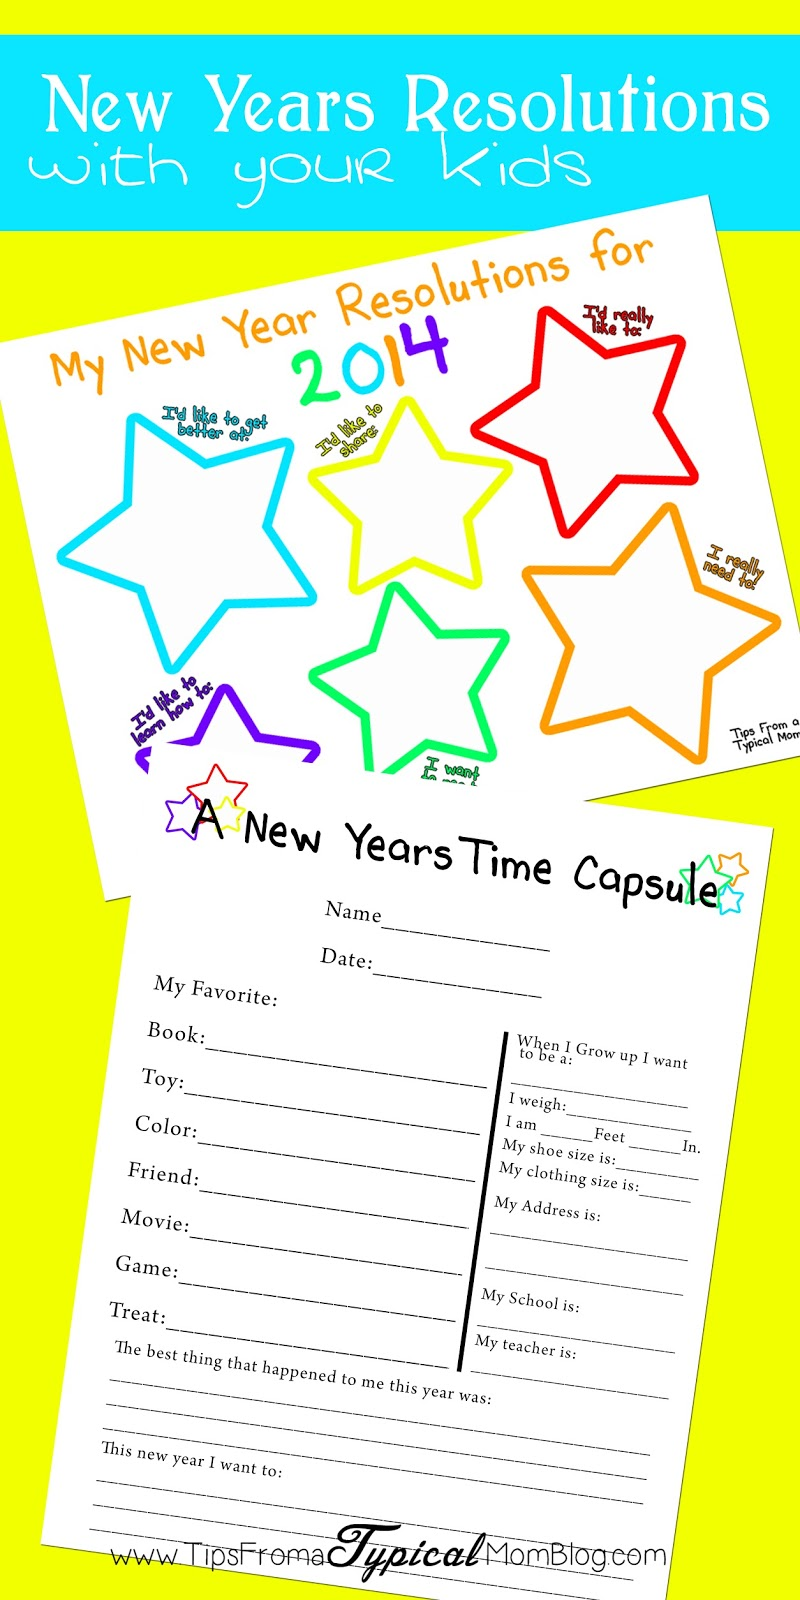 Making New Years Resolutions with your Kids Free Printable – Time Capsule Worksheet